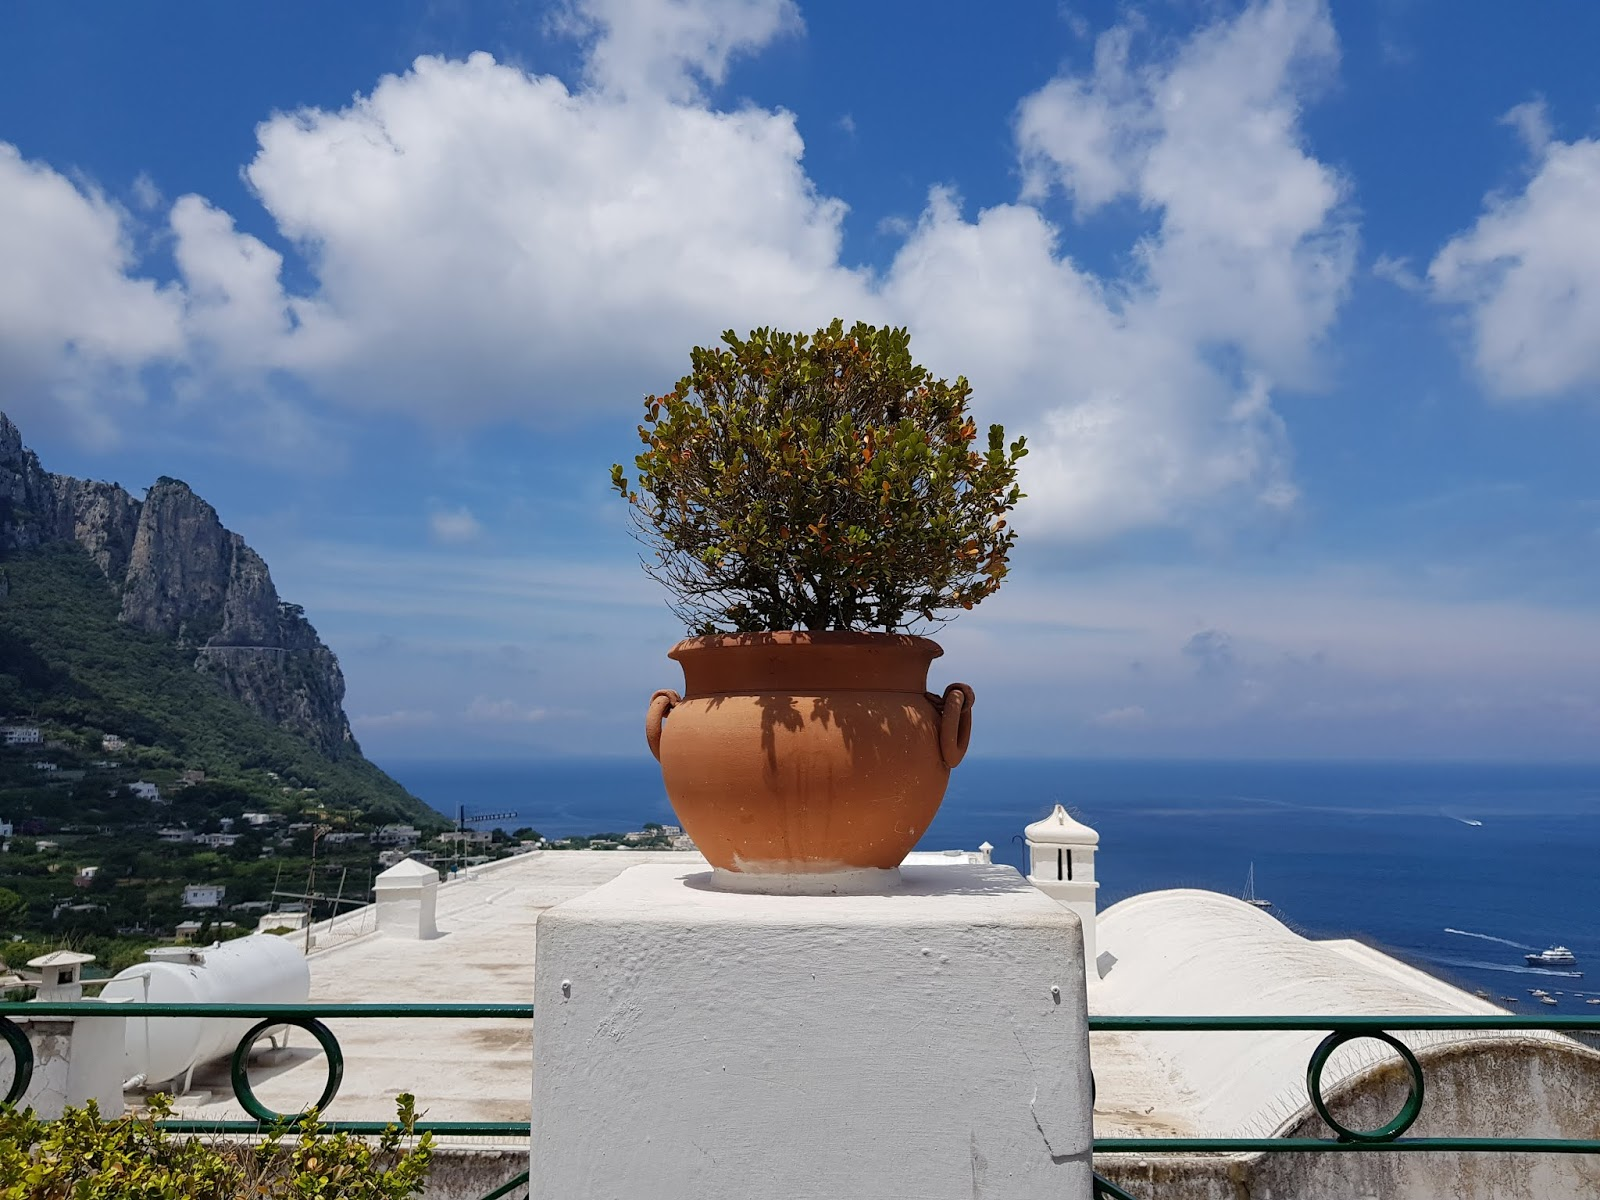 italy holiday capri view scenery what learn during travel